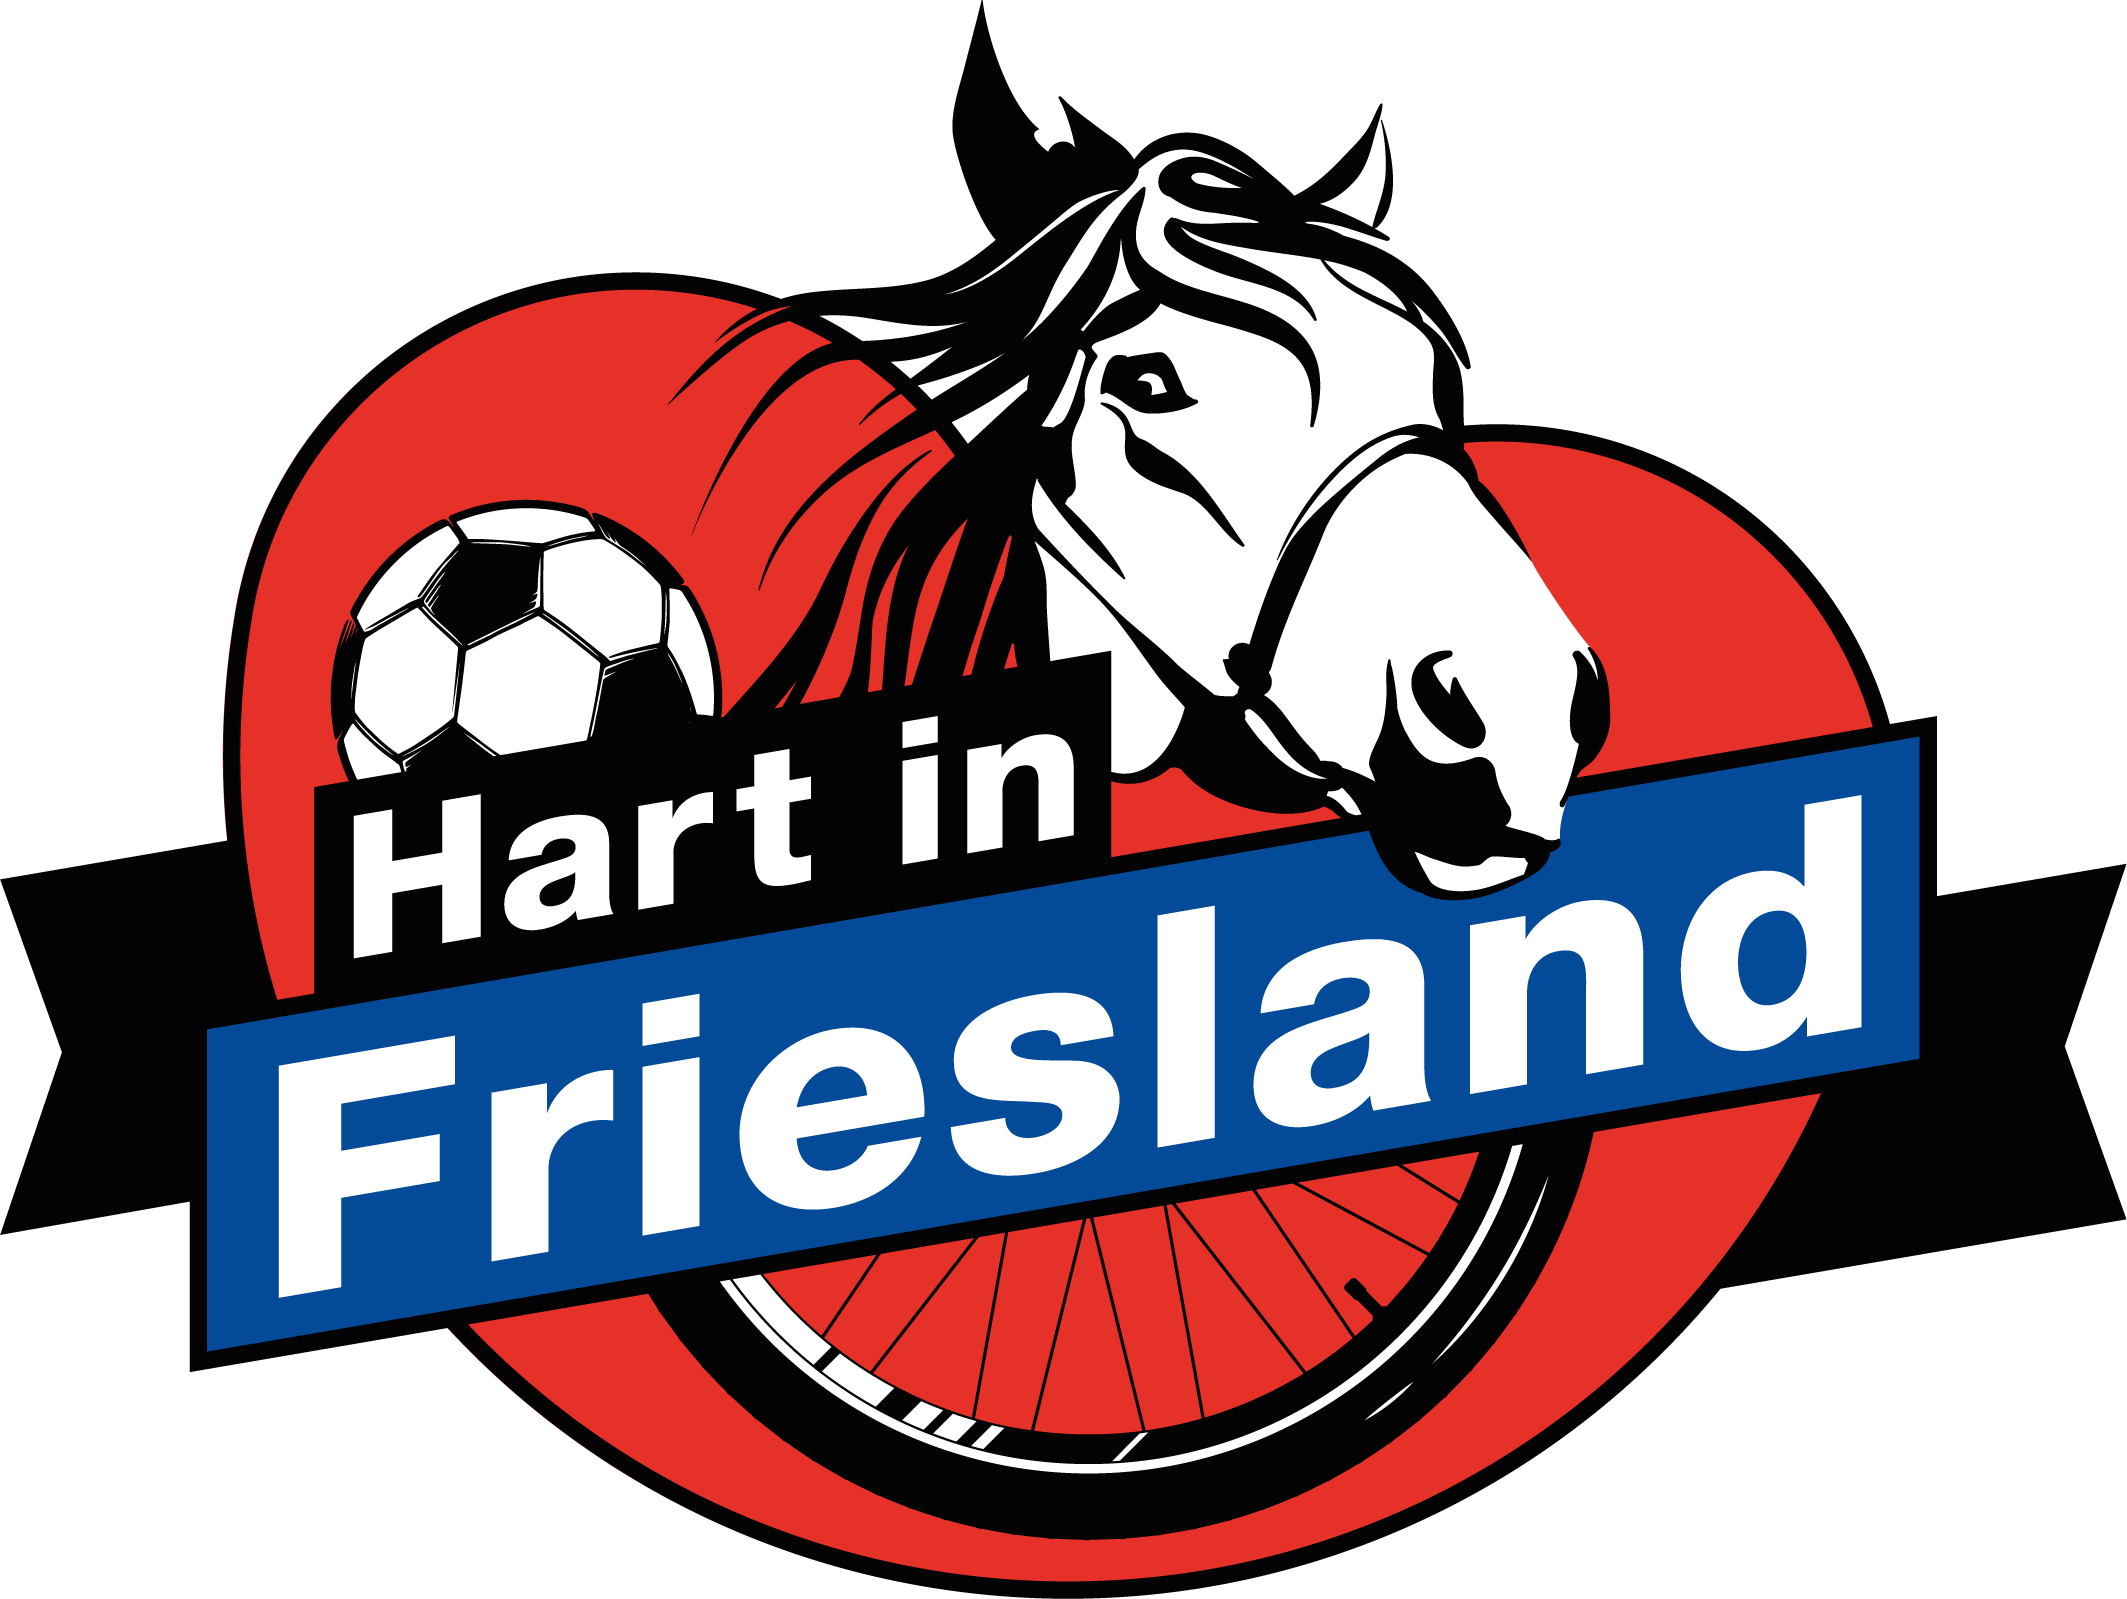 Hart in Friesland